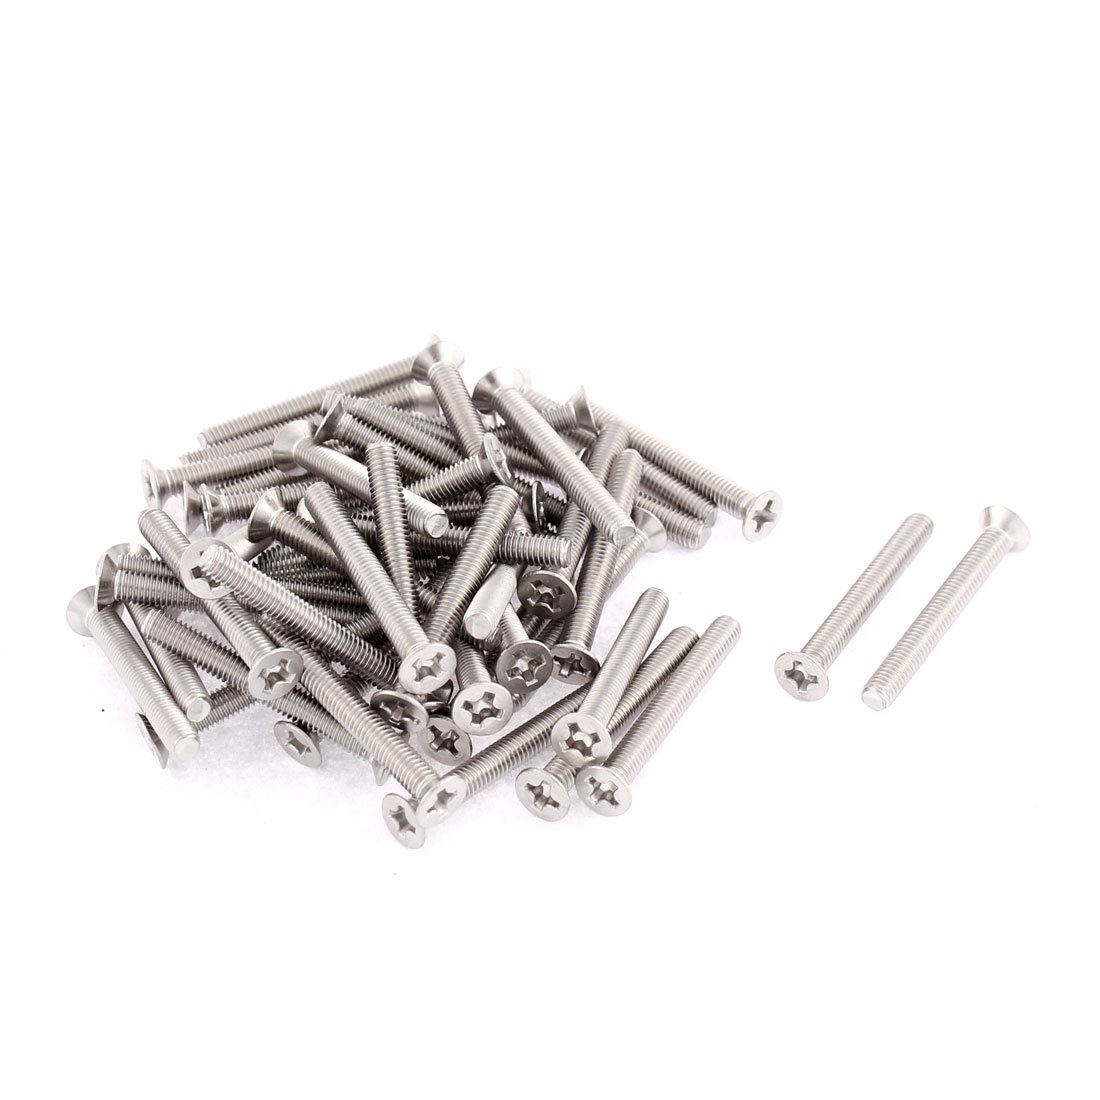 M3 x 25mm Phillips Flat Head Stainless Steel Countersunk Bolts Screws 50pcs